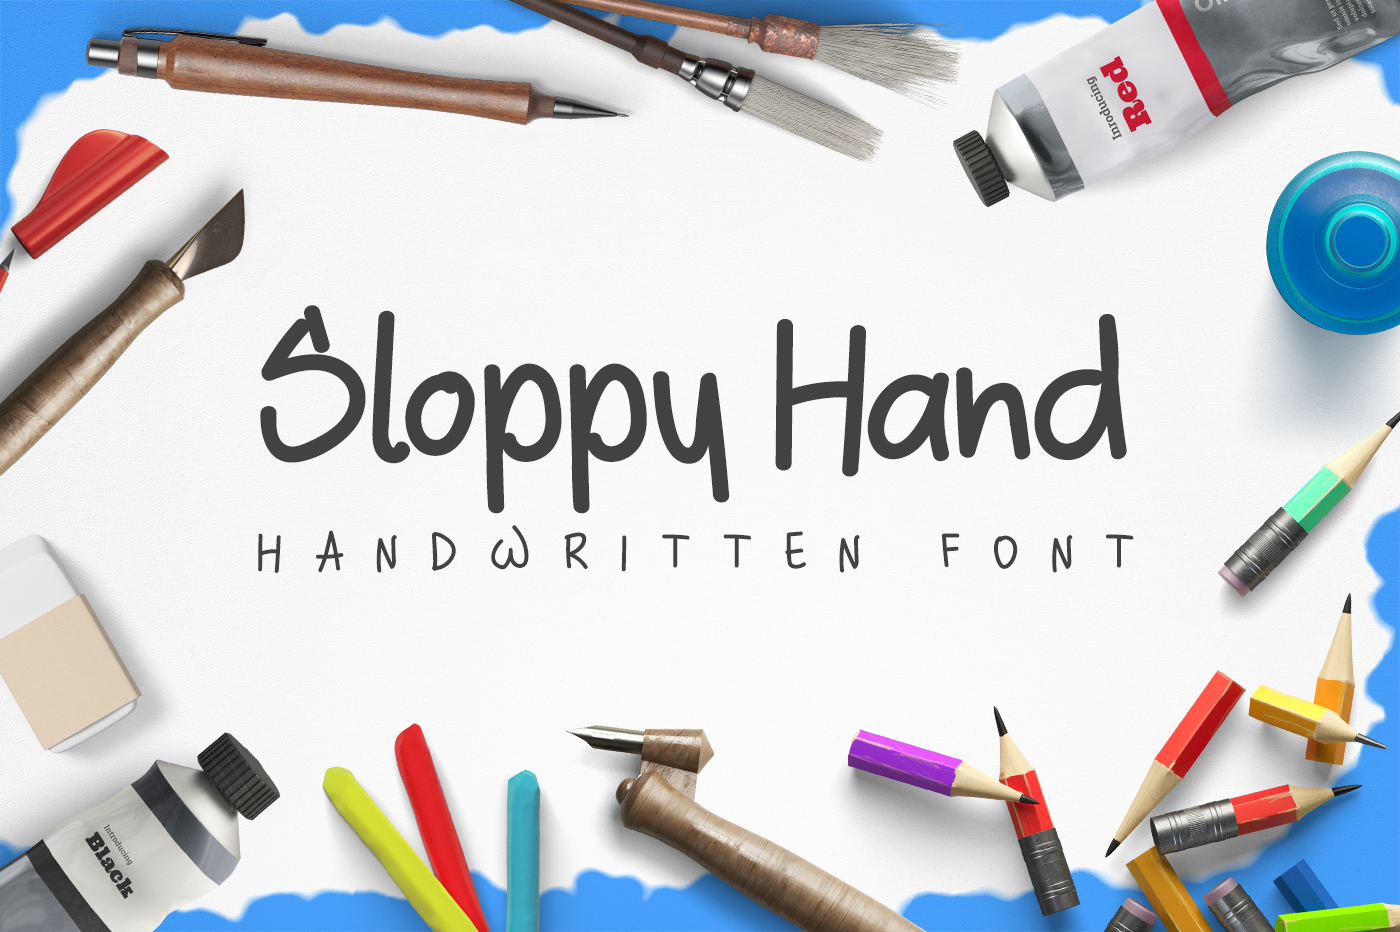 Sloppy Hand - a Handwritten Font example image 1